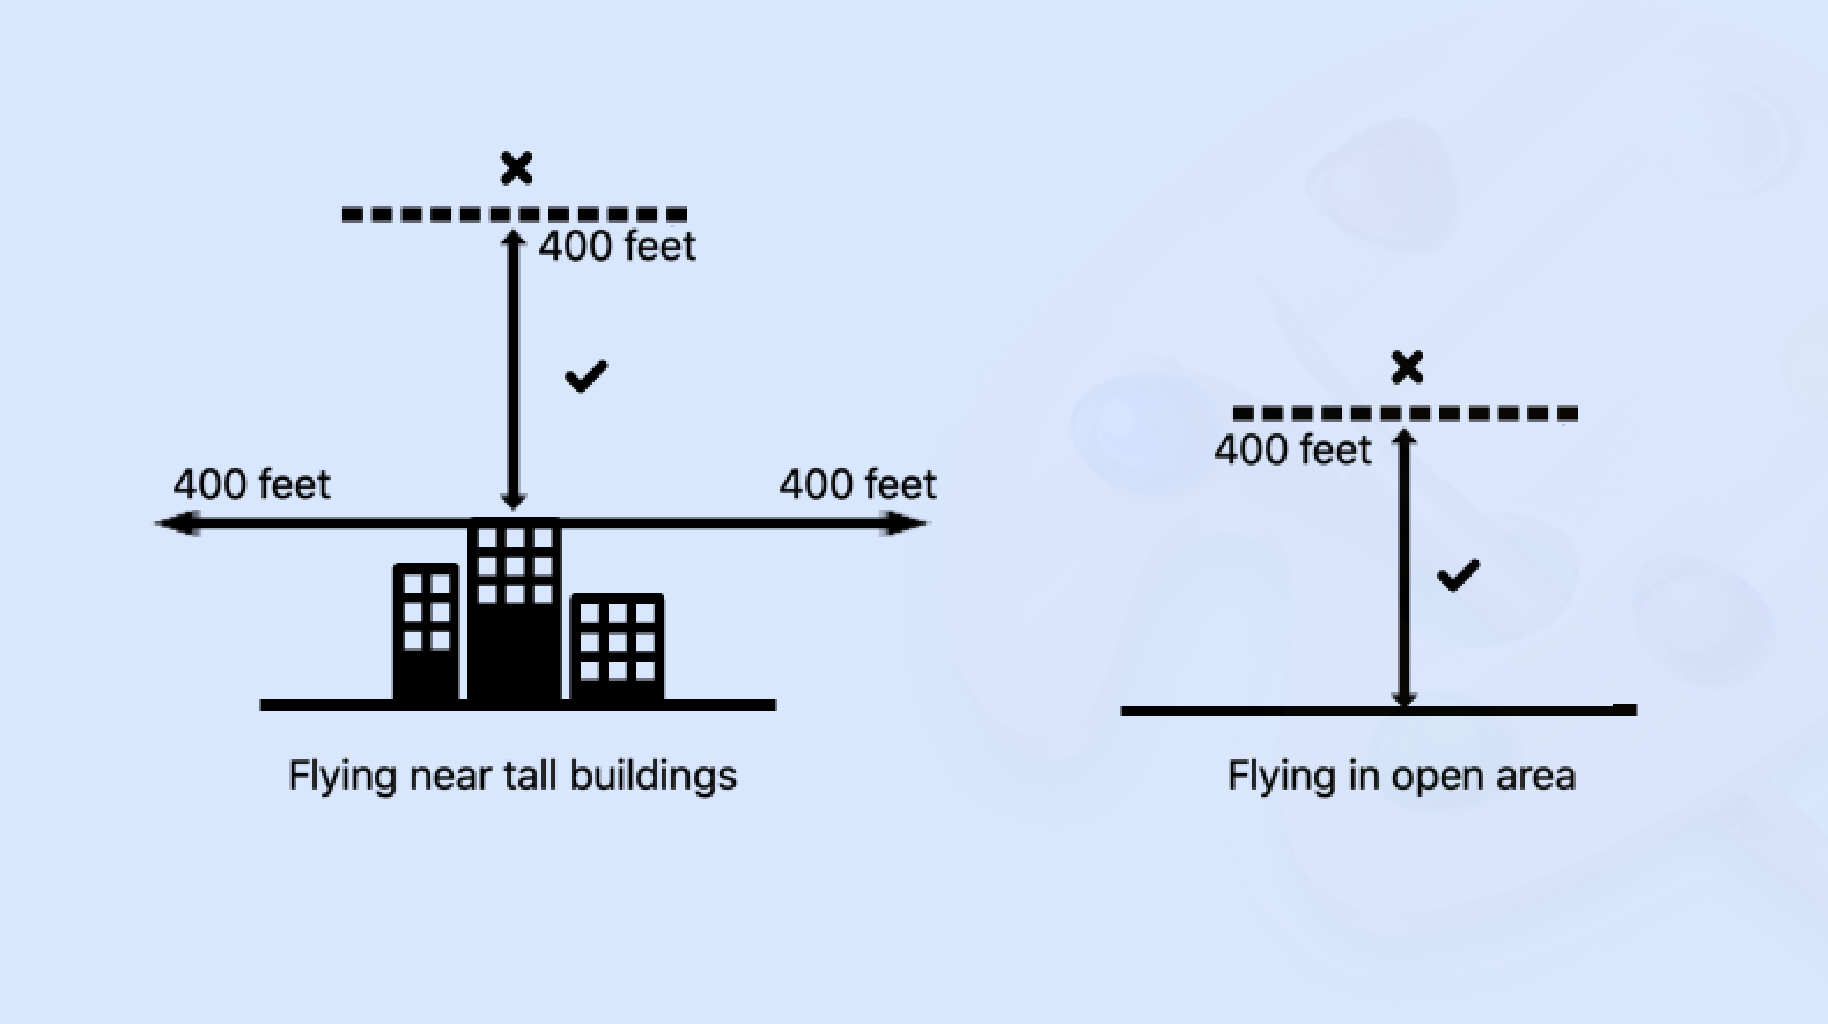 what happens if you fly a drone above 400 feet?